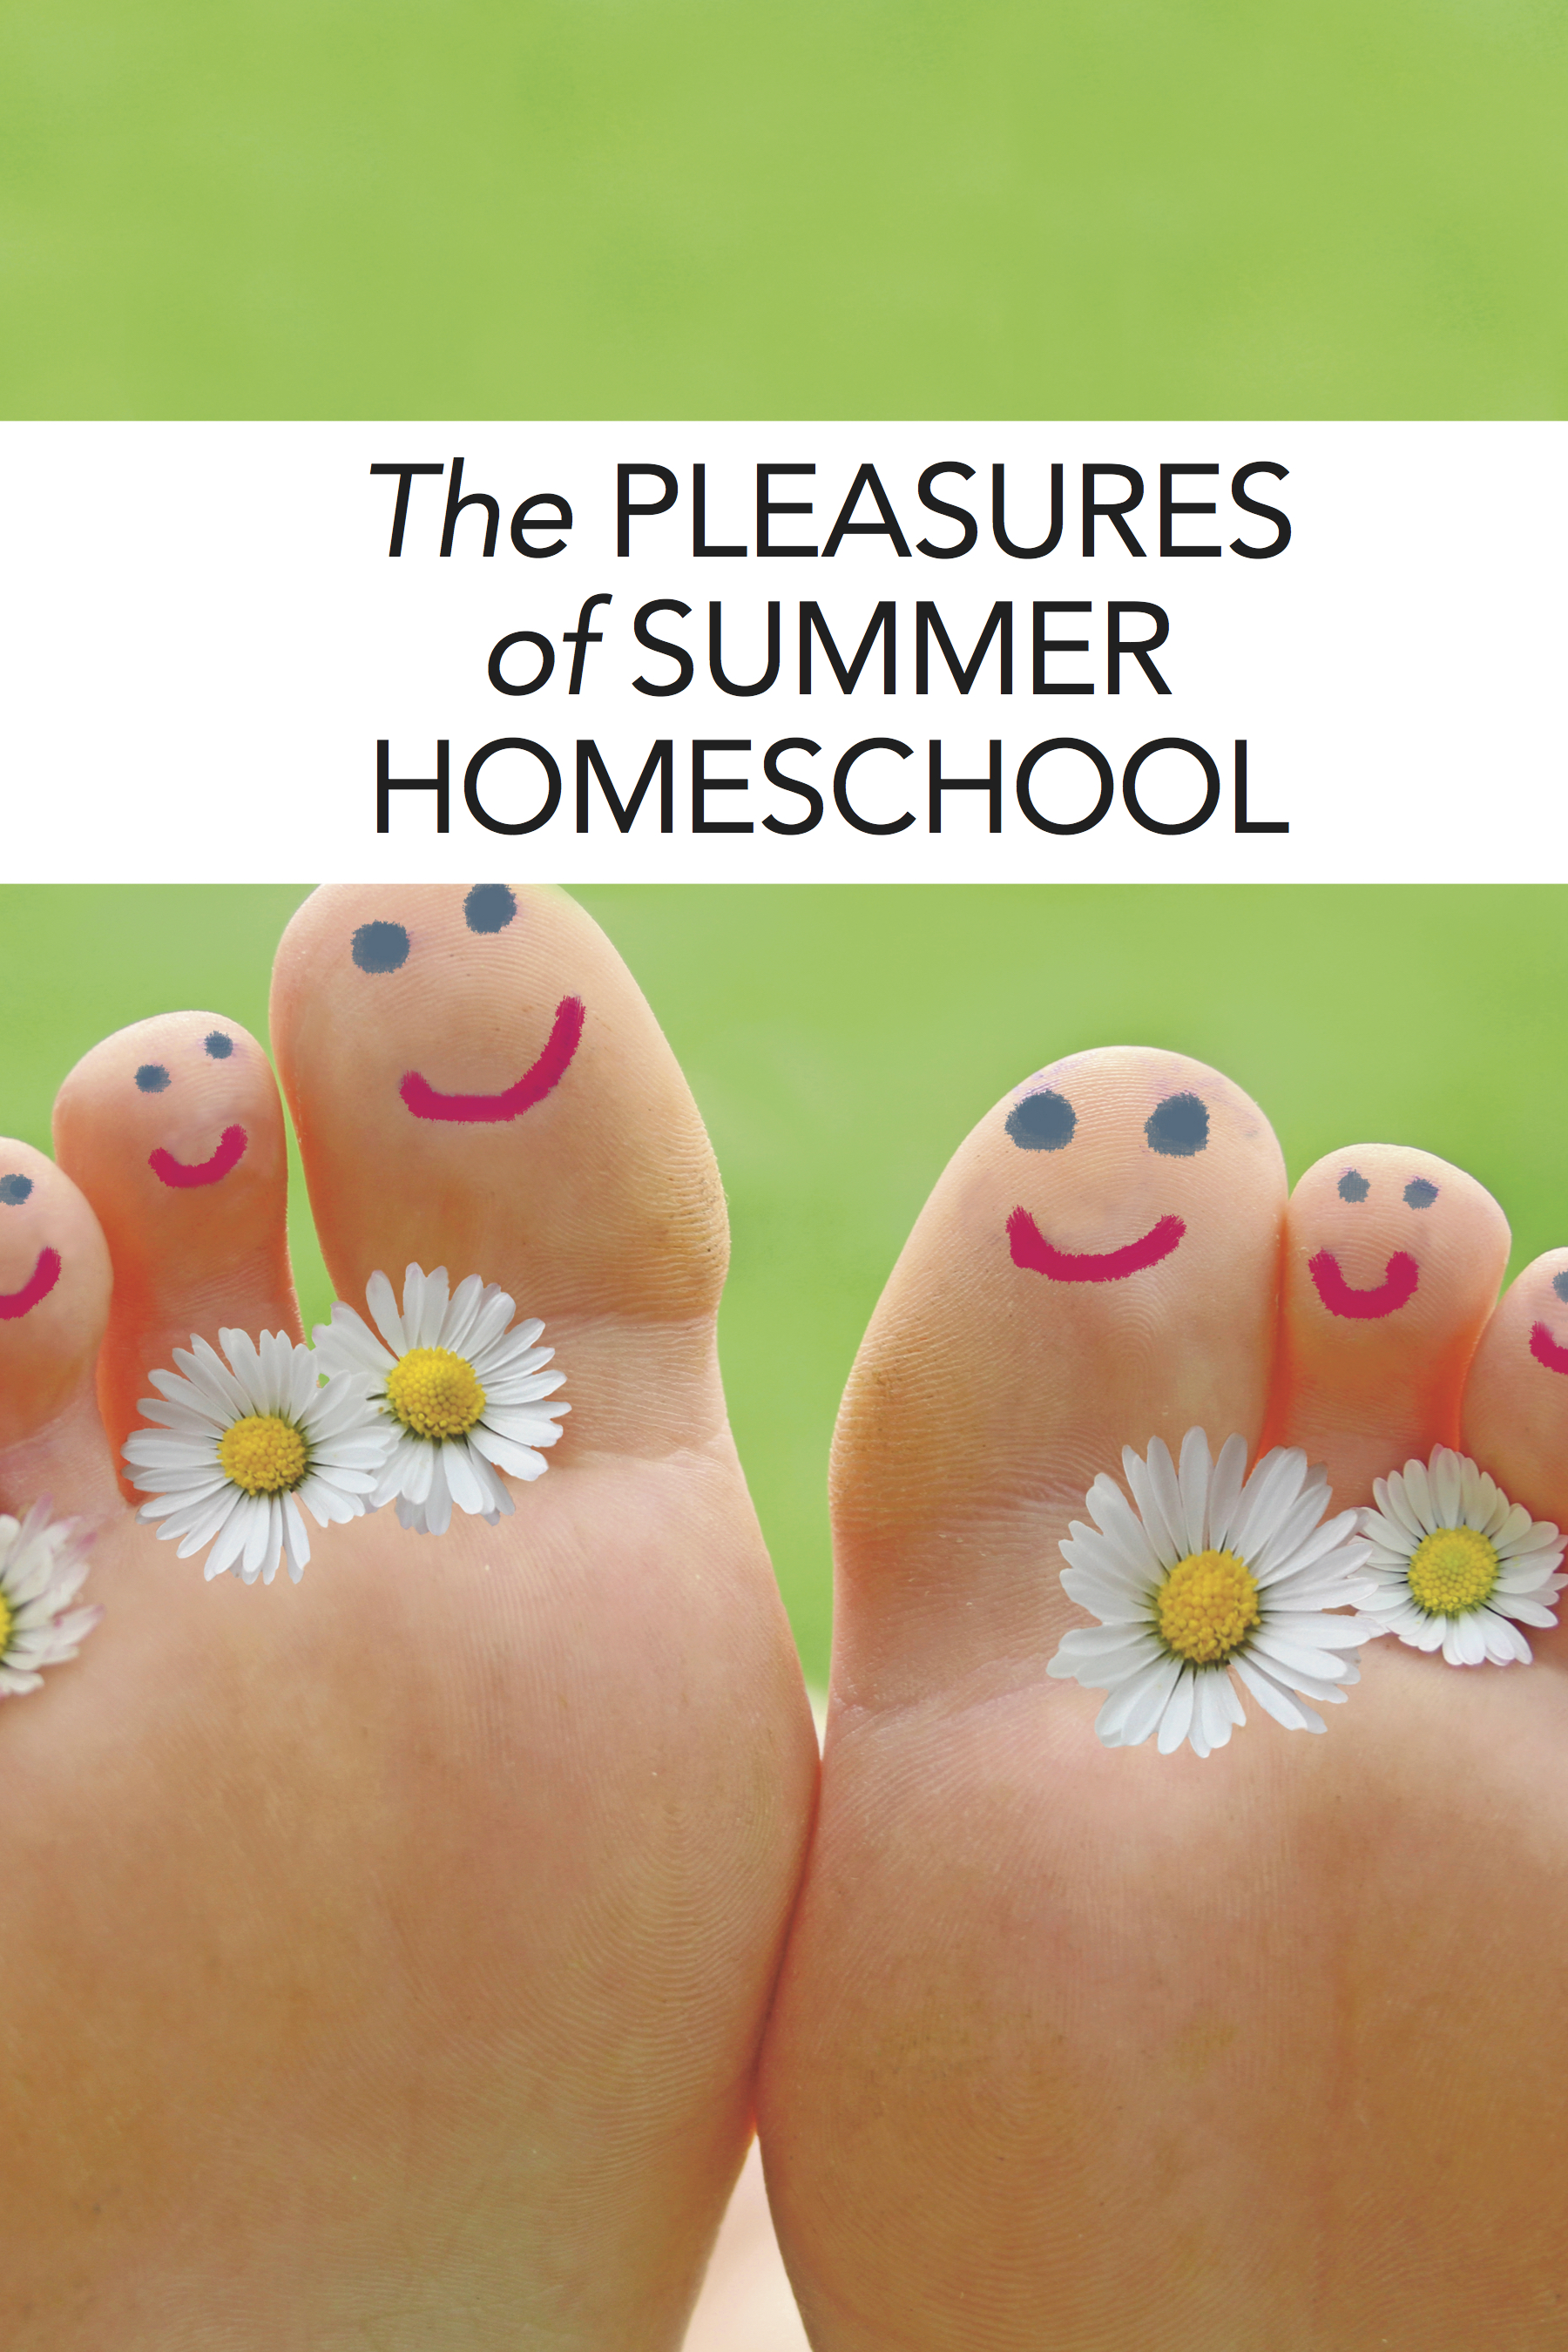 Homeschooling summer break: A to-do list for a laid-back, life-enhancing summer holiday